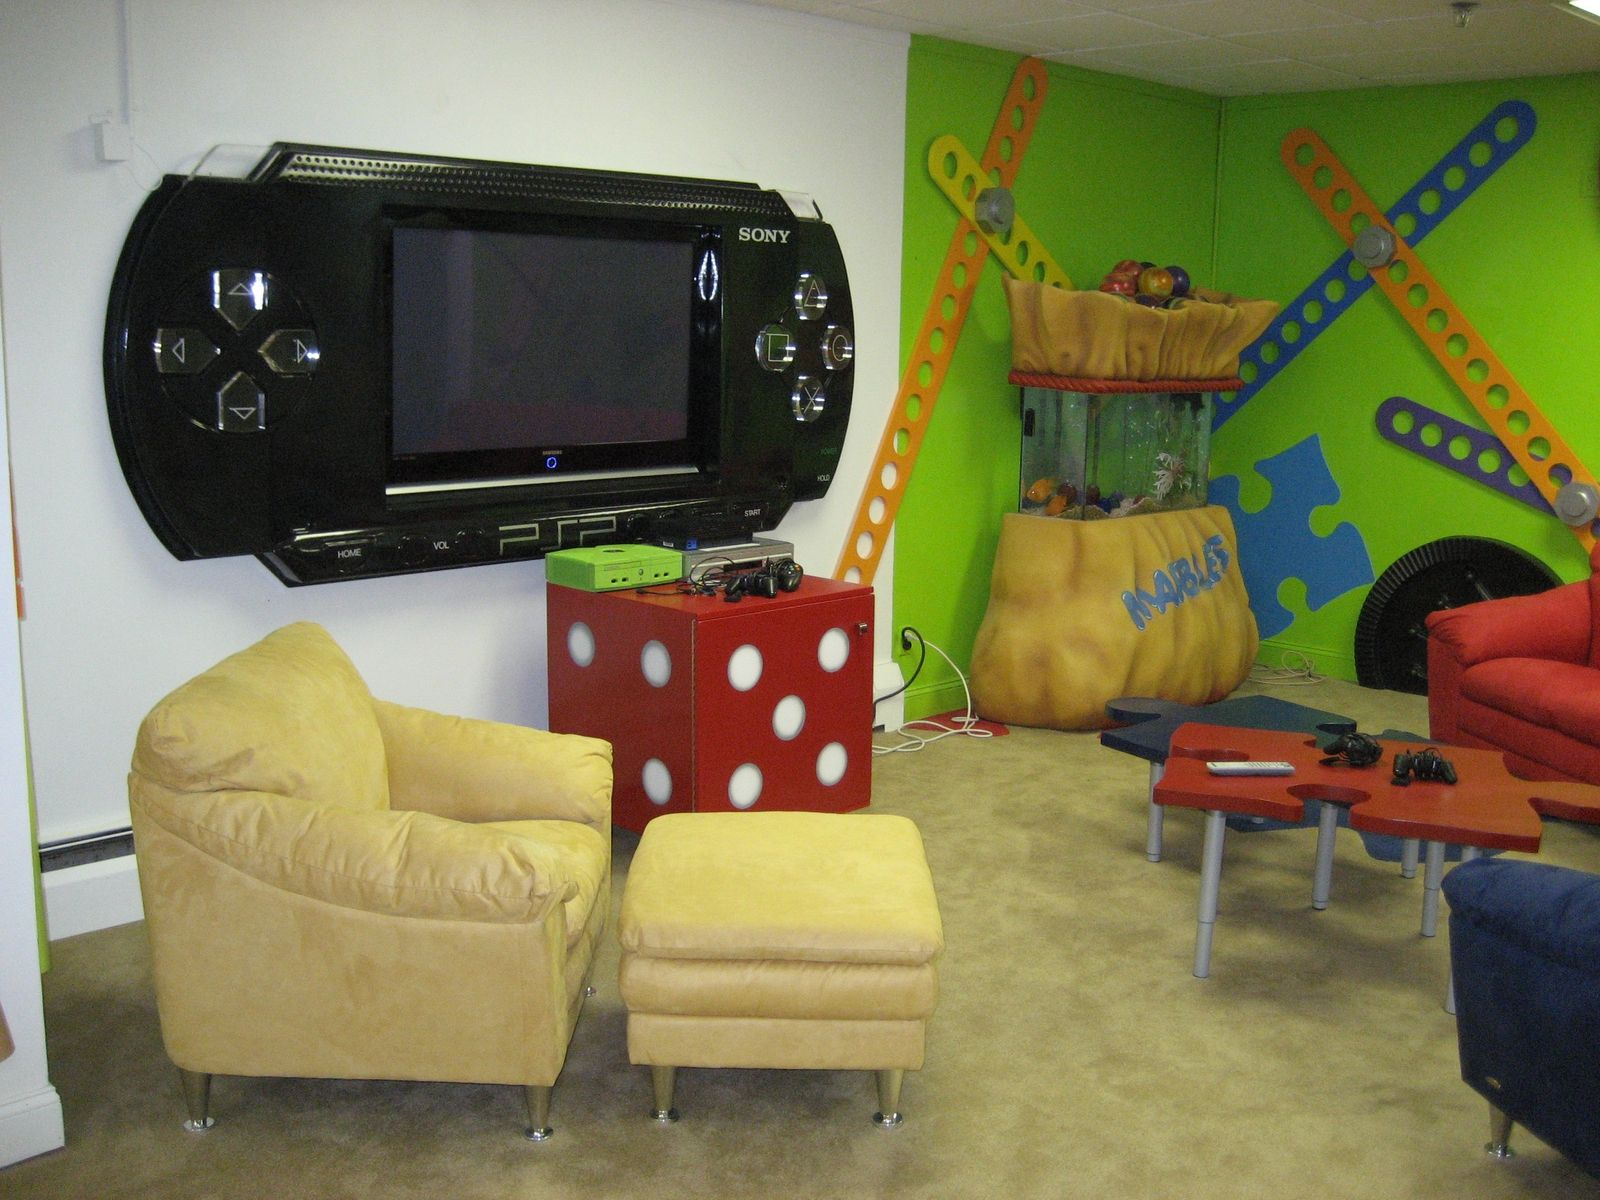 Awesome Tv Frame For The Room Diffe Designs Like Xbox Playstation Super Nintendo Etc Would Go Great Everyone S Favorites